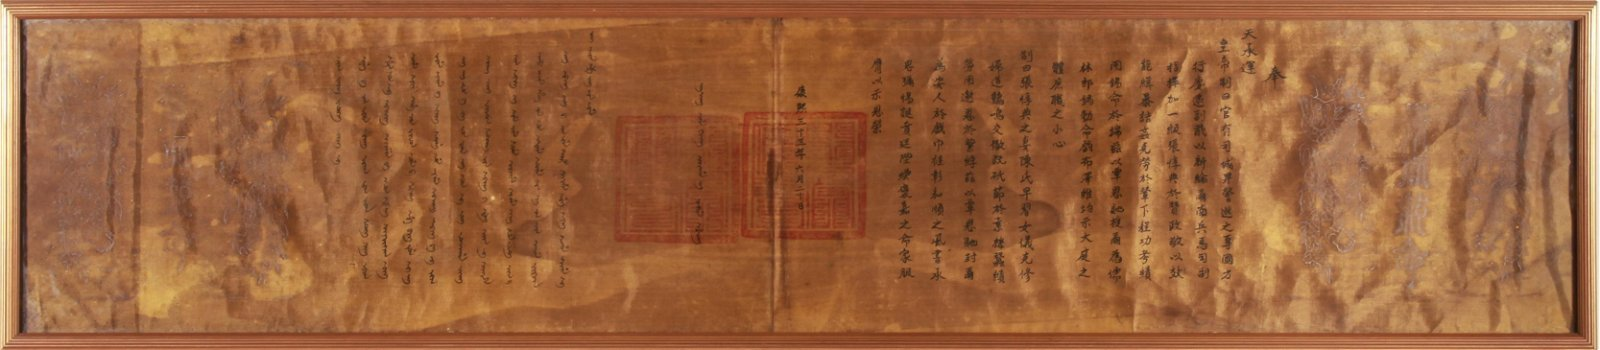 Chinese Scroll Calligraphy w Dragons on Silk